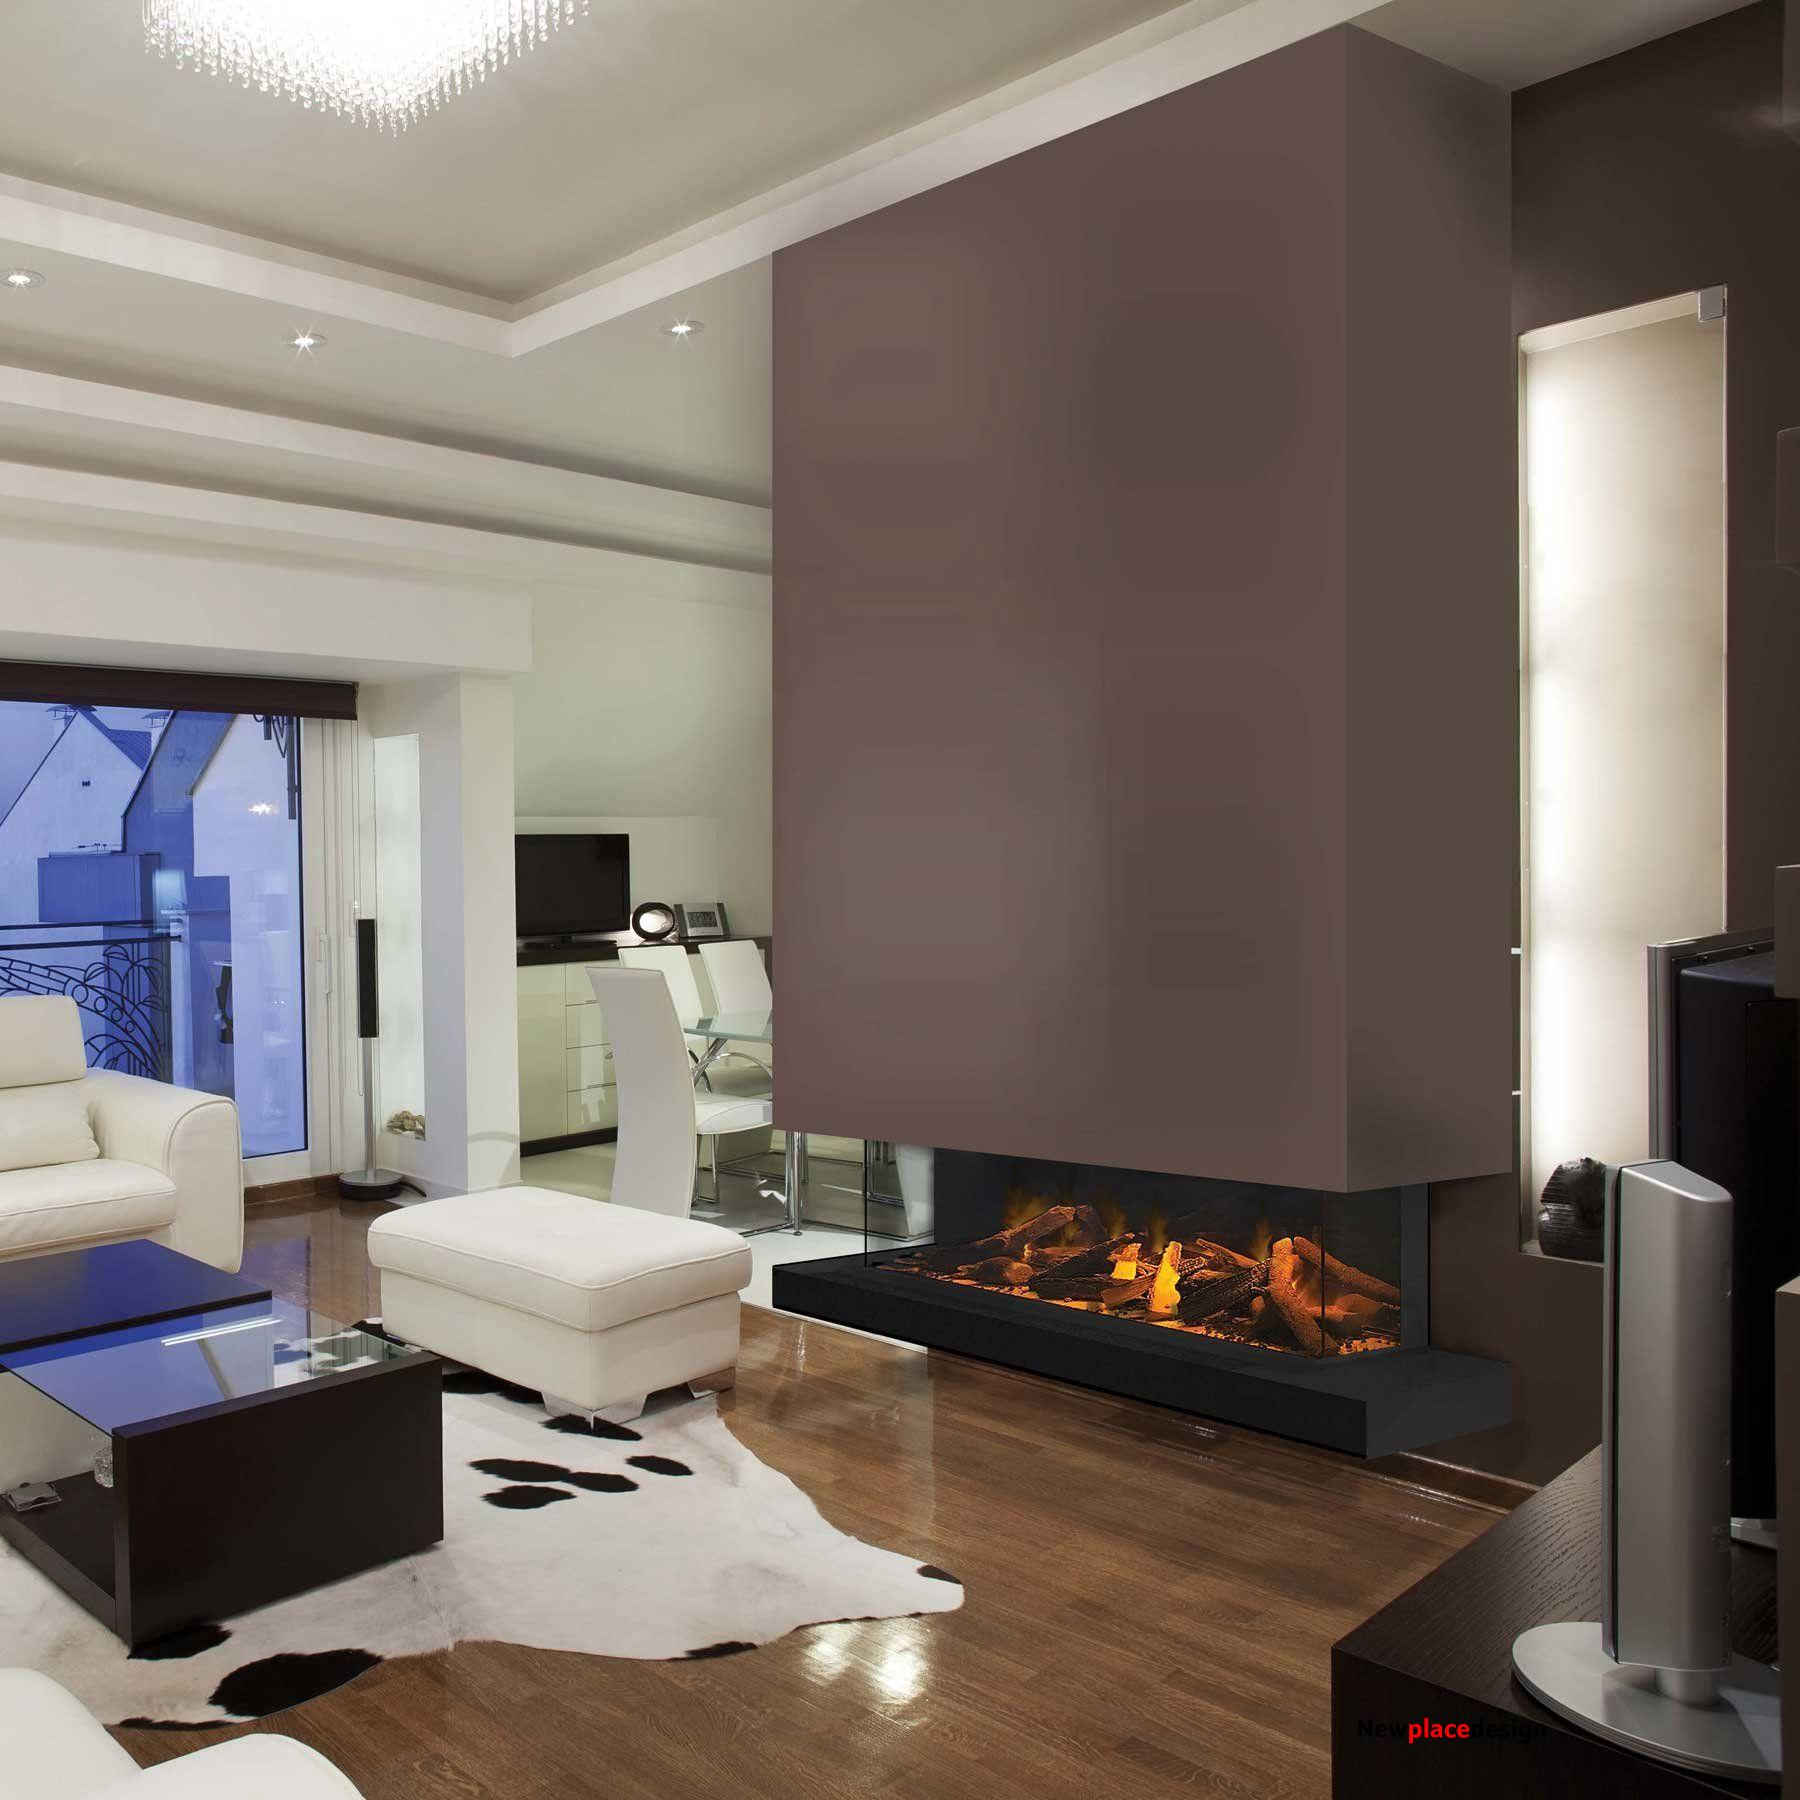 Evonic Fires E1500GF3 Hole in the Wall Electric Fire